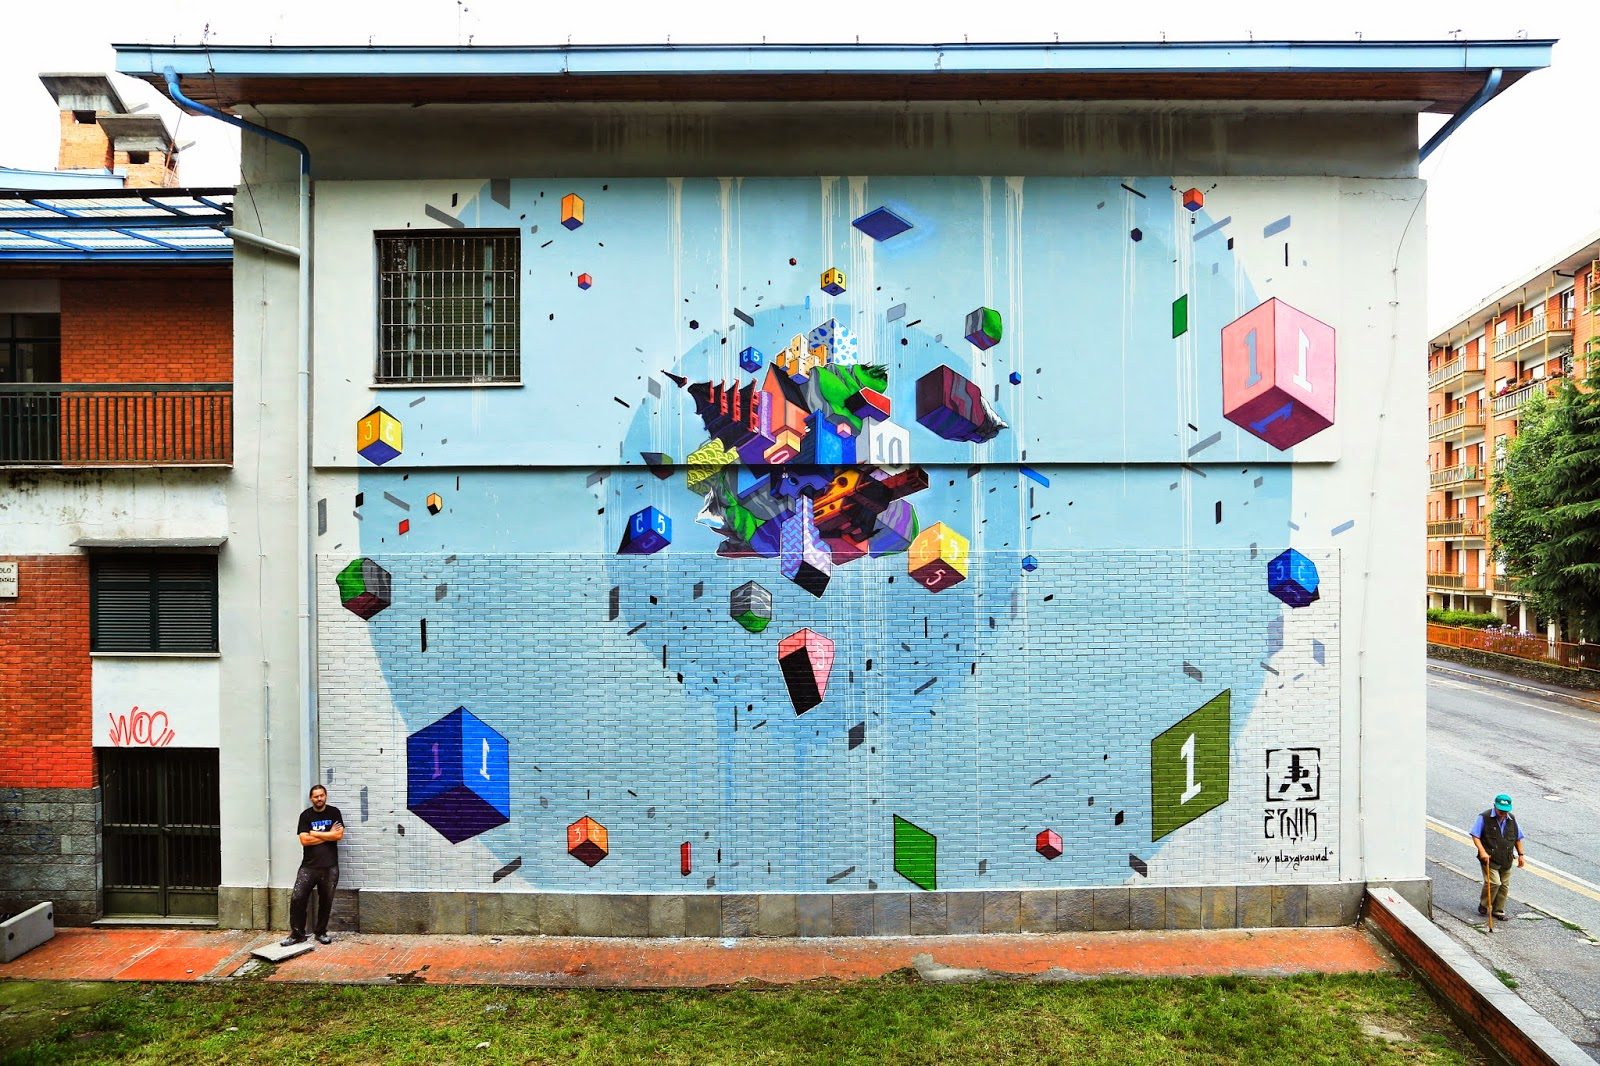 Etnik was recently invited to paint for the Street Alps Festival where he just finished working on this new piece somewhere in Pinerolo, a small city in northwestern Italy, 40 kilometres southwest of Turin on the river Chisone.